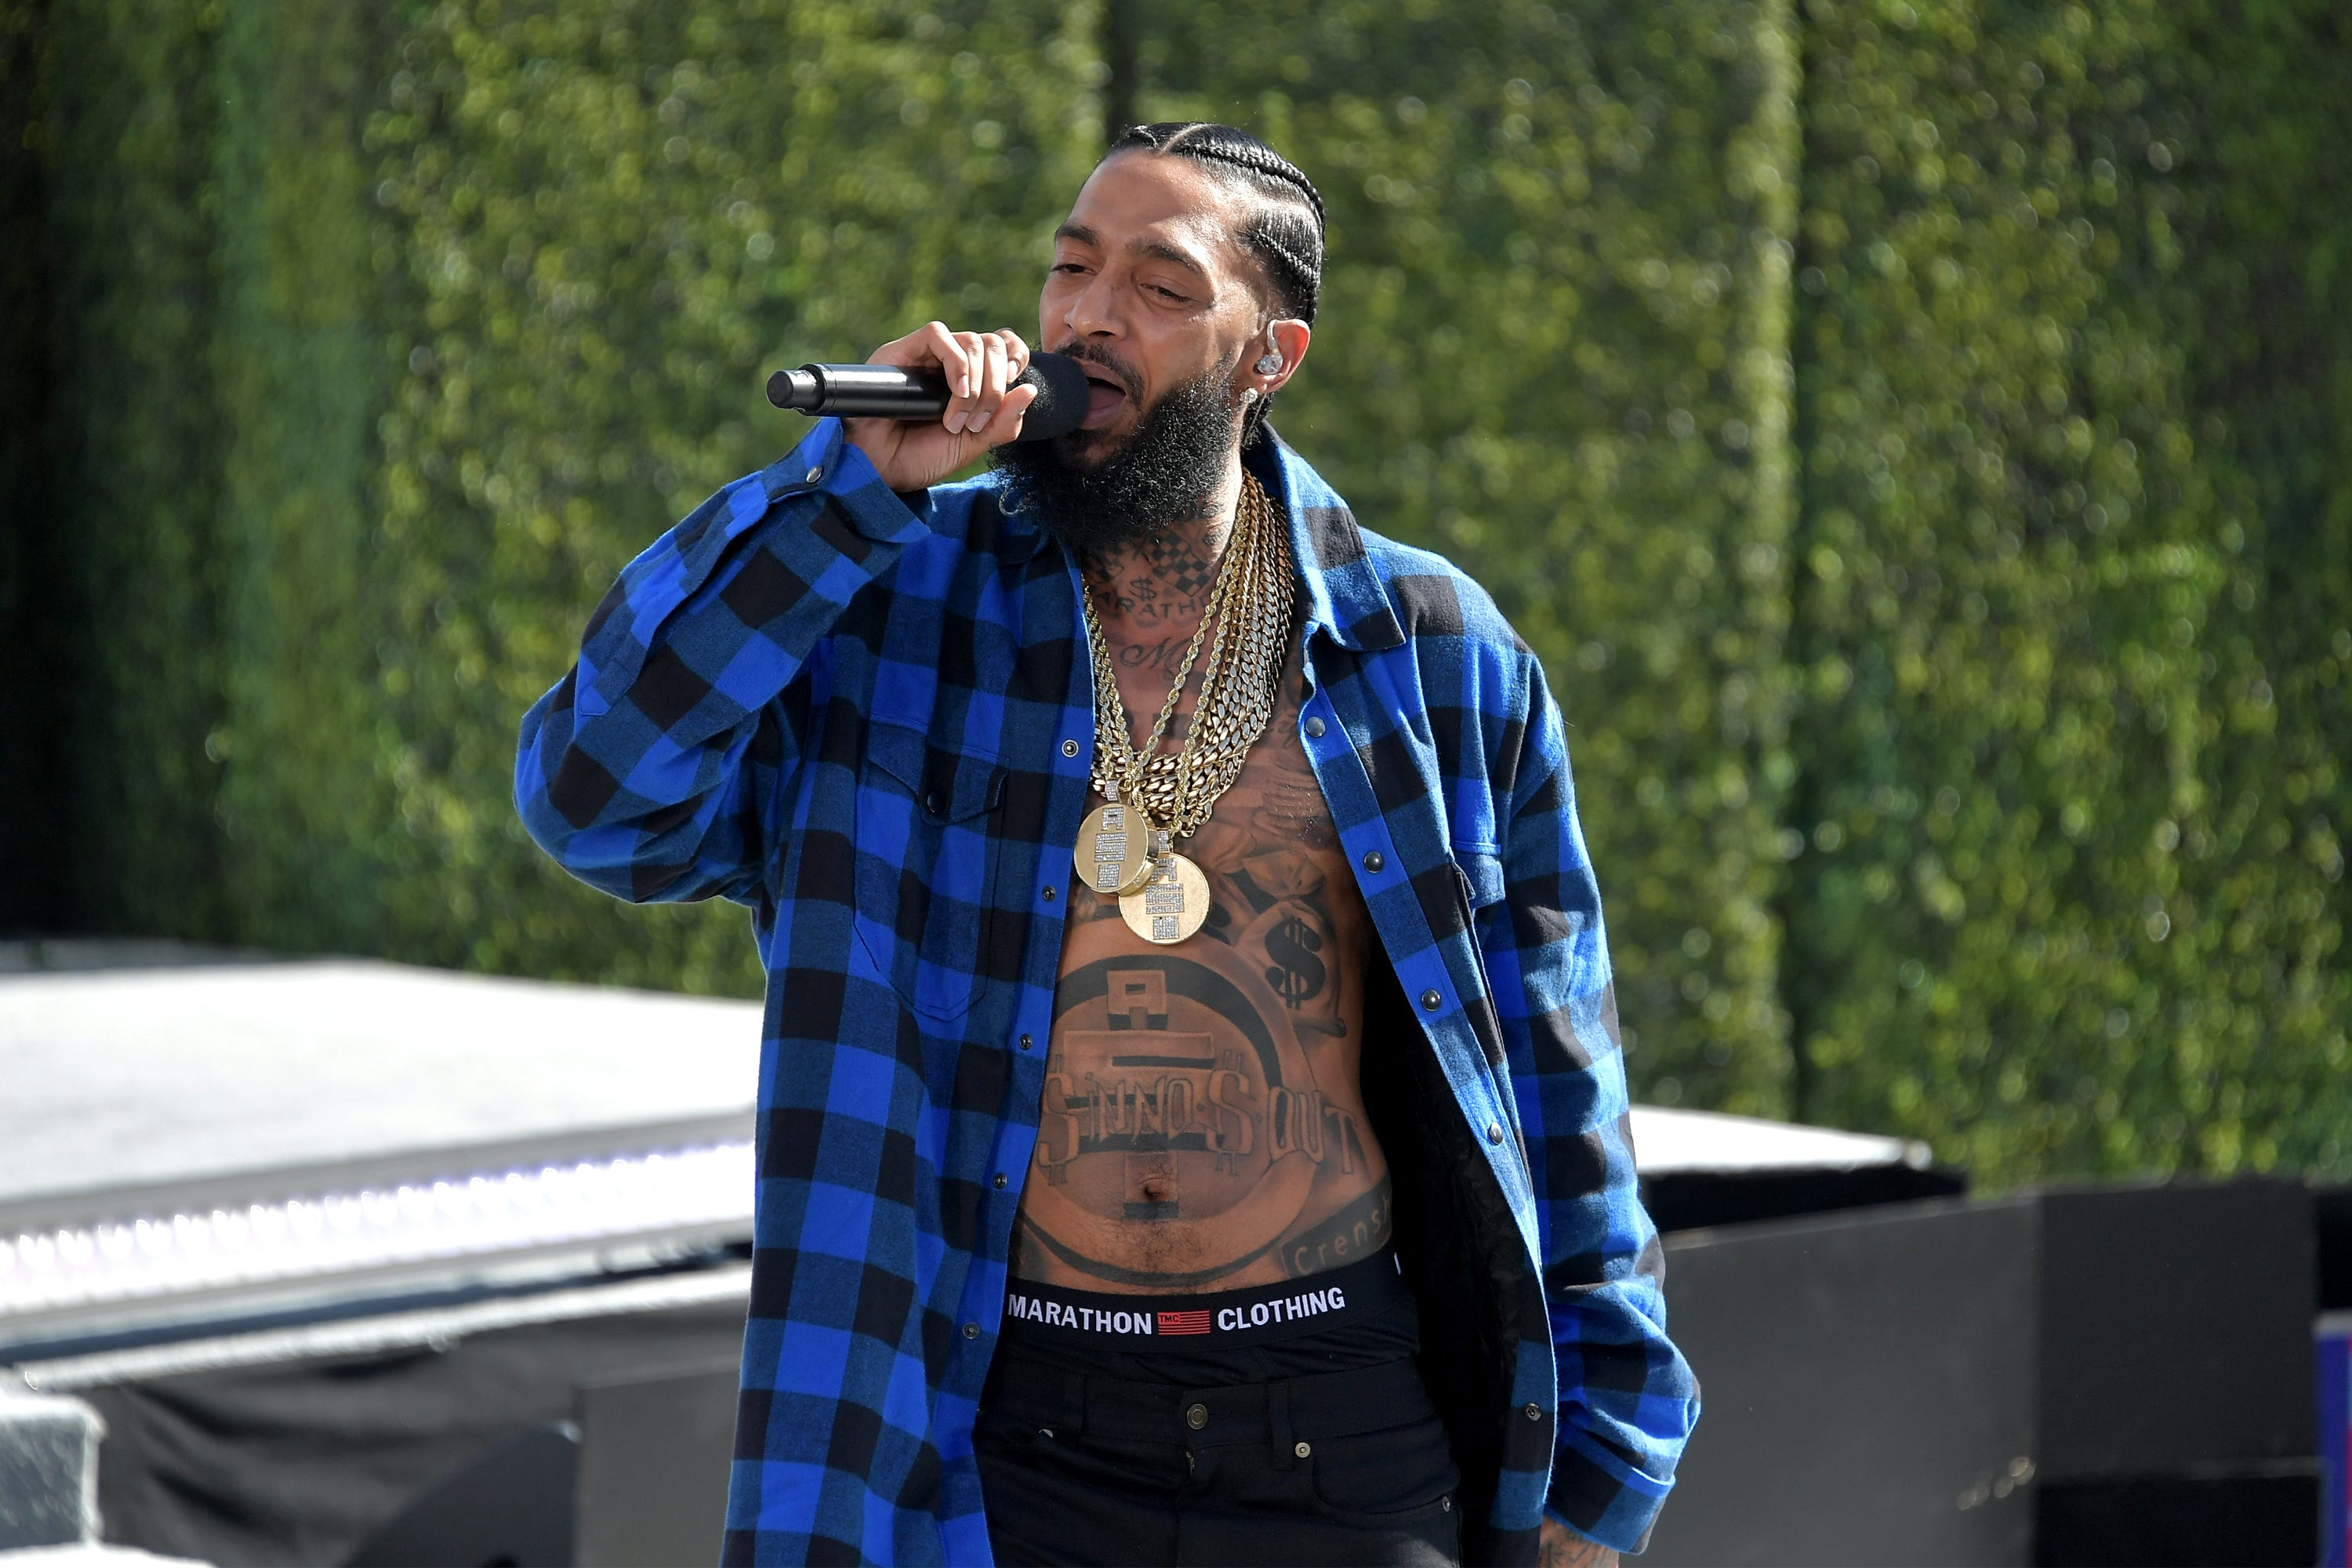 Nipsey Hussle performs onstage at Live! Red! Ready! Pre-Show, sponsored by Nissan, at the 2018 BET Awards at Microsoft Theater on June 24, 2018 in Los Angeles, Calif. Hussle was killed in a shooting outside a clothing store he owned on Sunday, March 31, 2019.